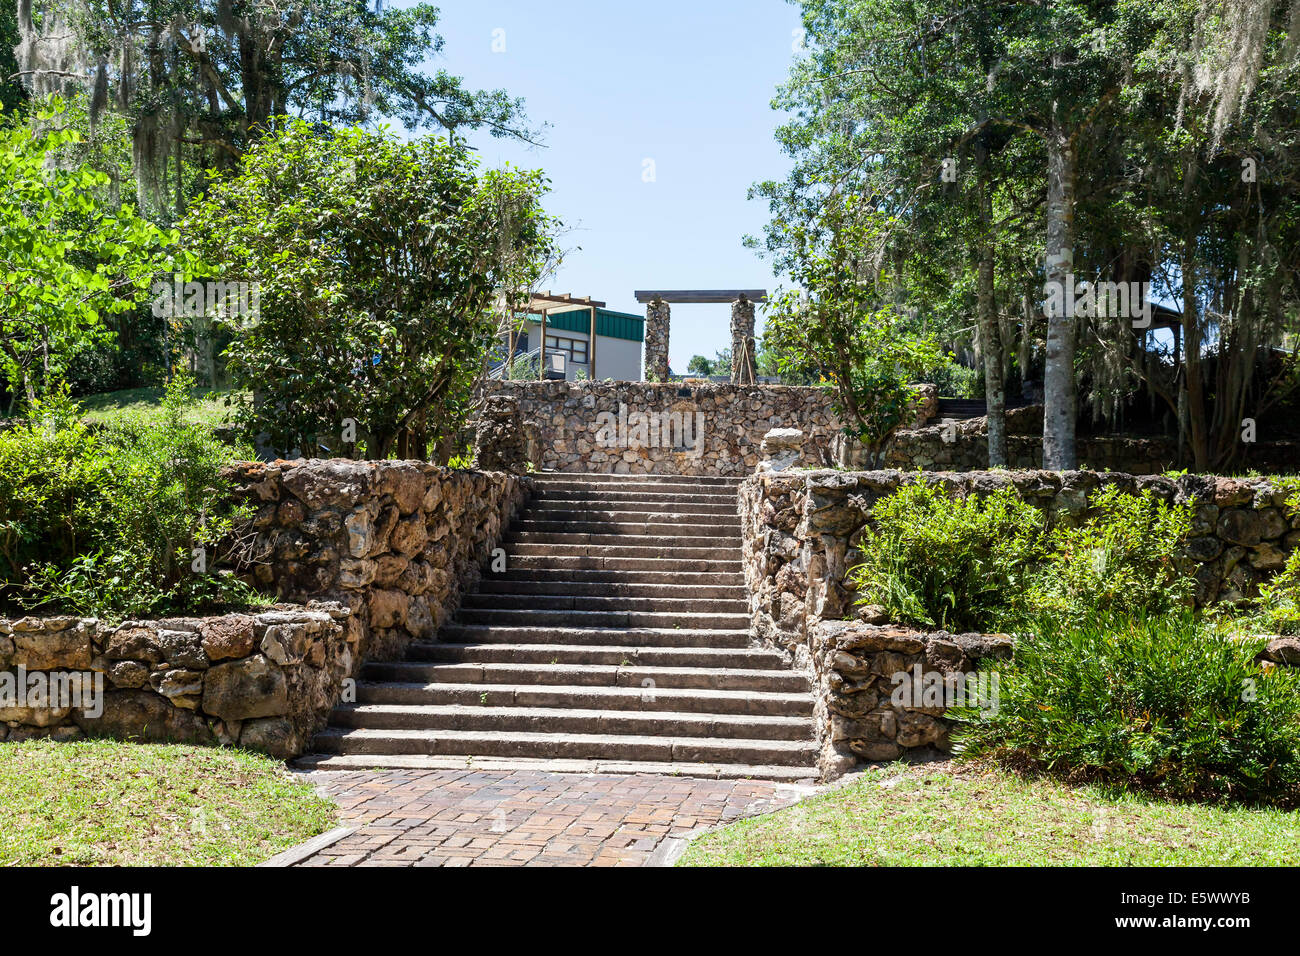 Tiered Landscaping With Stone Retaining Walls Flank Steps In The Stock Photo Royalty Free Image